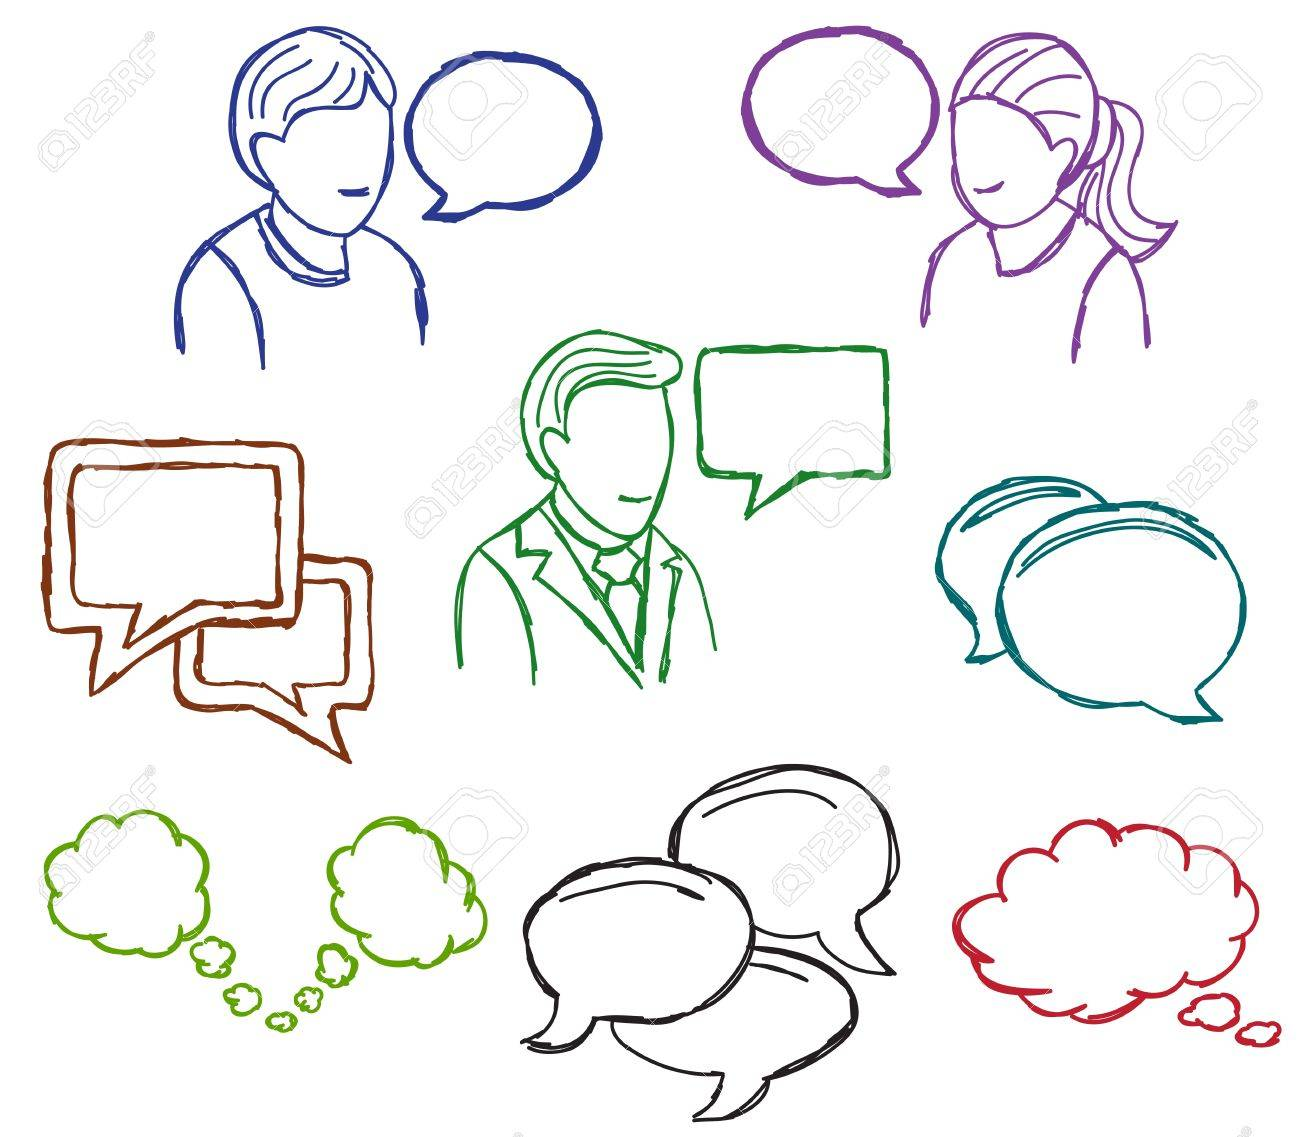 Speech and communication icons - doodle style illustration Stock Vector - 14804021